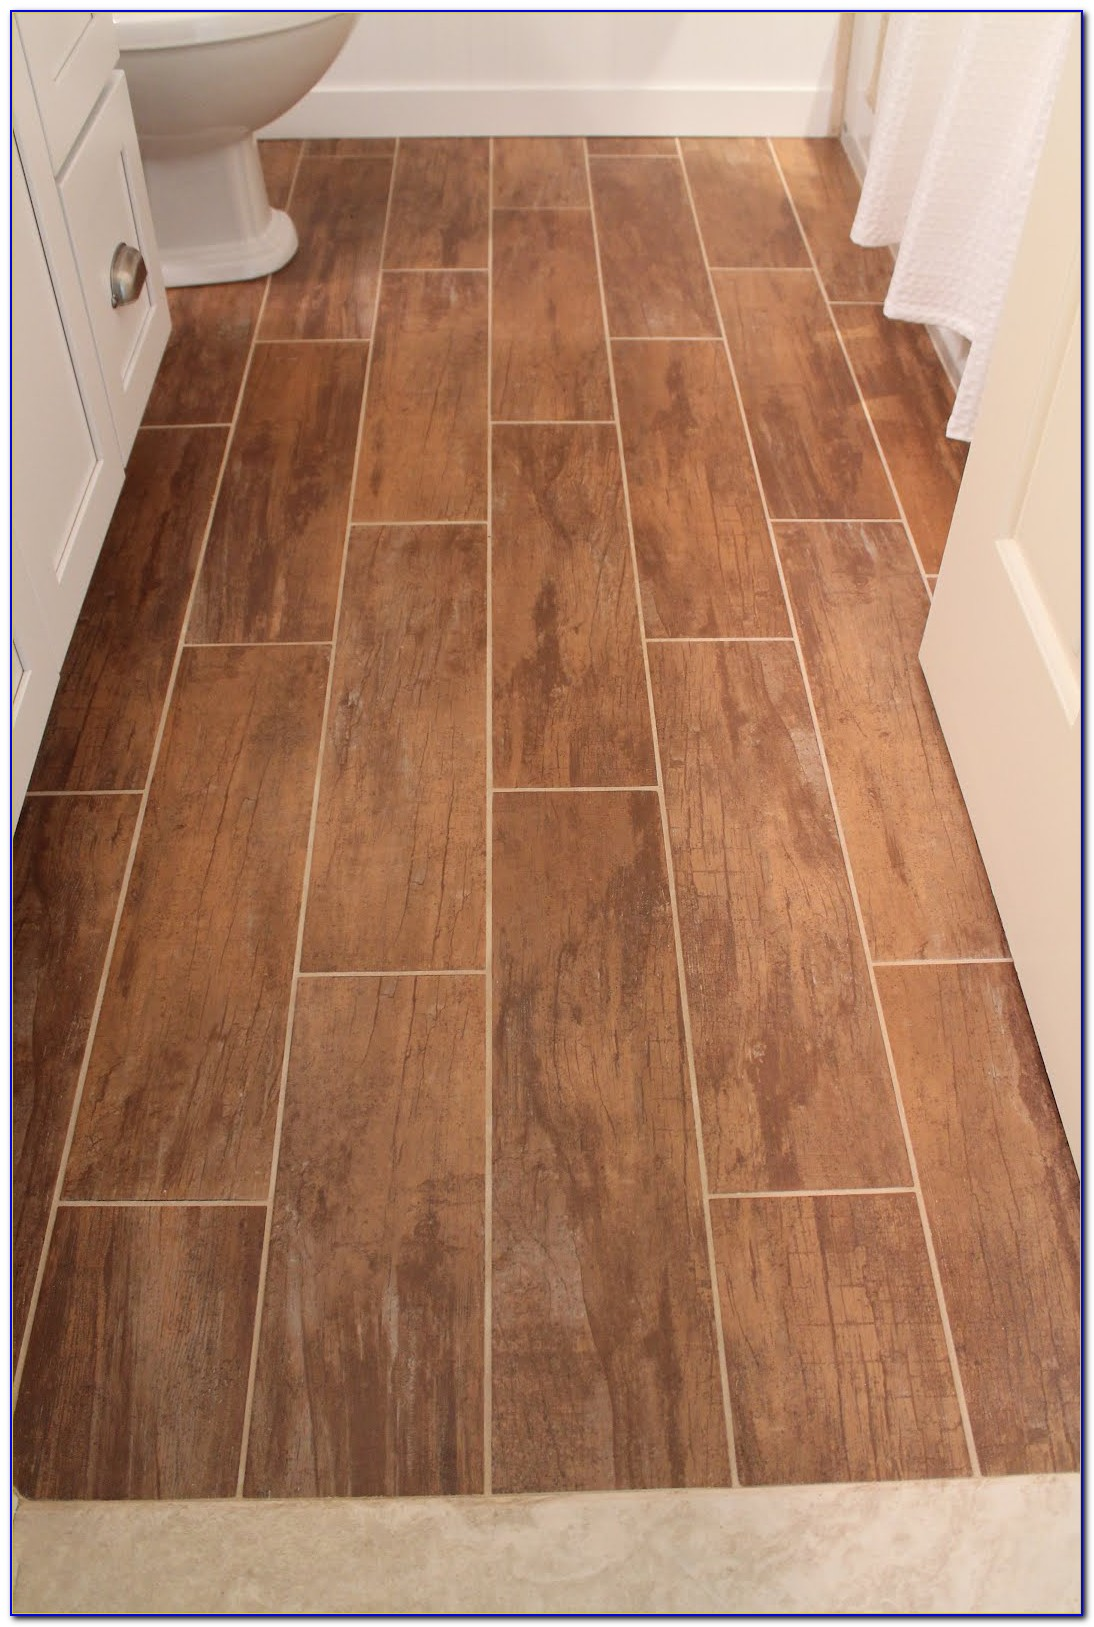 Wood Grain Ceramic Tile Canada  Tiles  Home Design Ideas